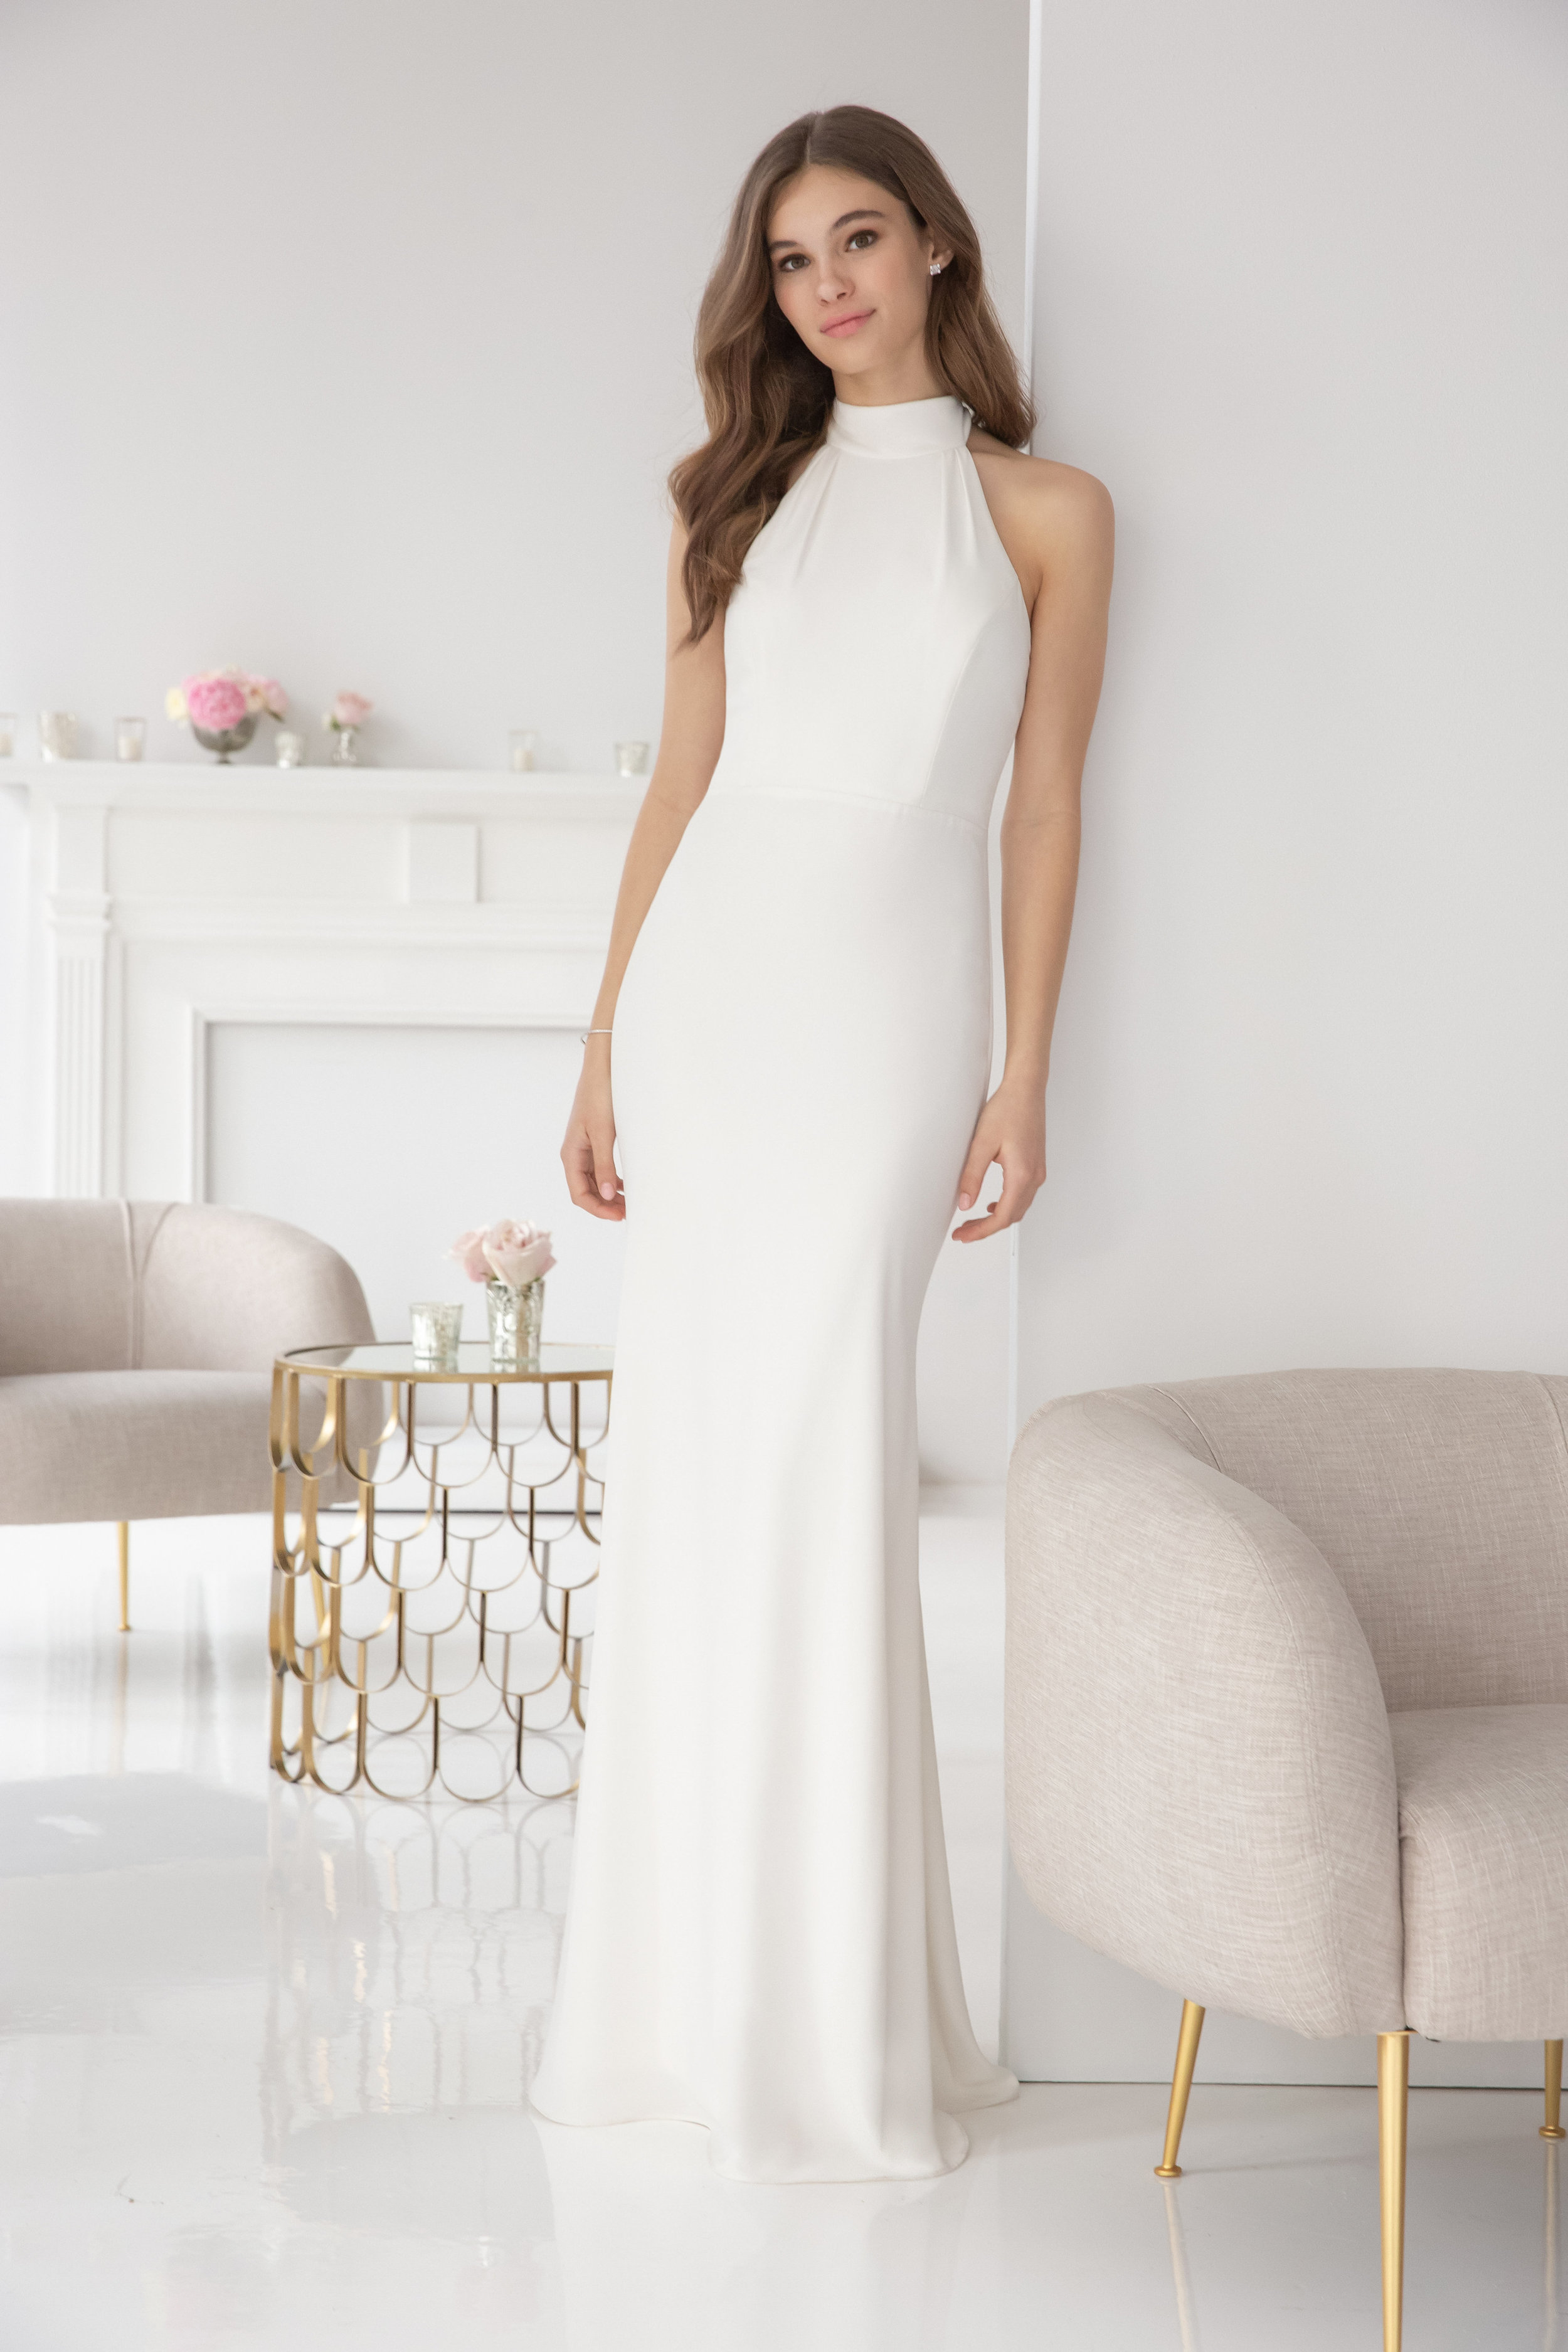 5900 -  Hayley Paige Occasions bridesmaids gown - Ivory crepe A-line gown, racer mock turtleneck, natural waist, strap detail at back.      Available in 7 colors